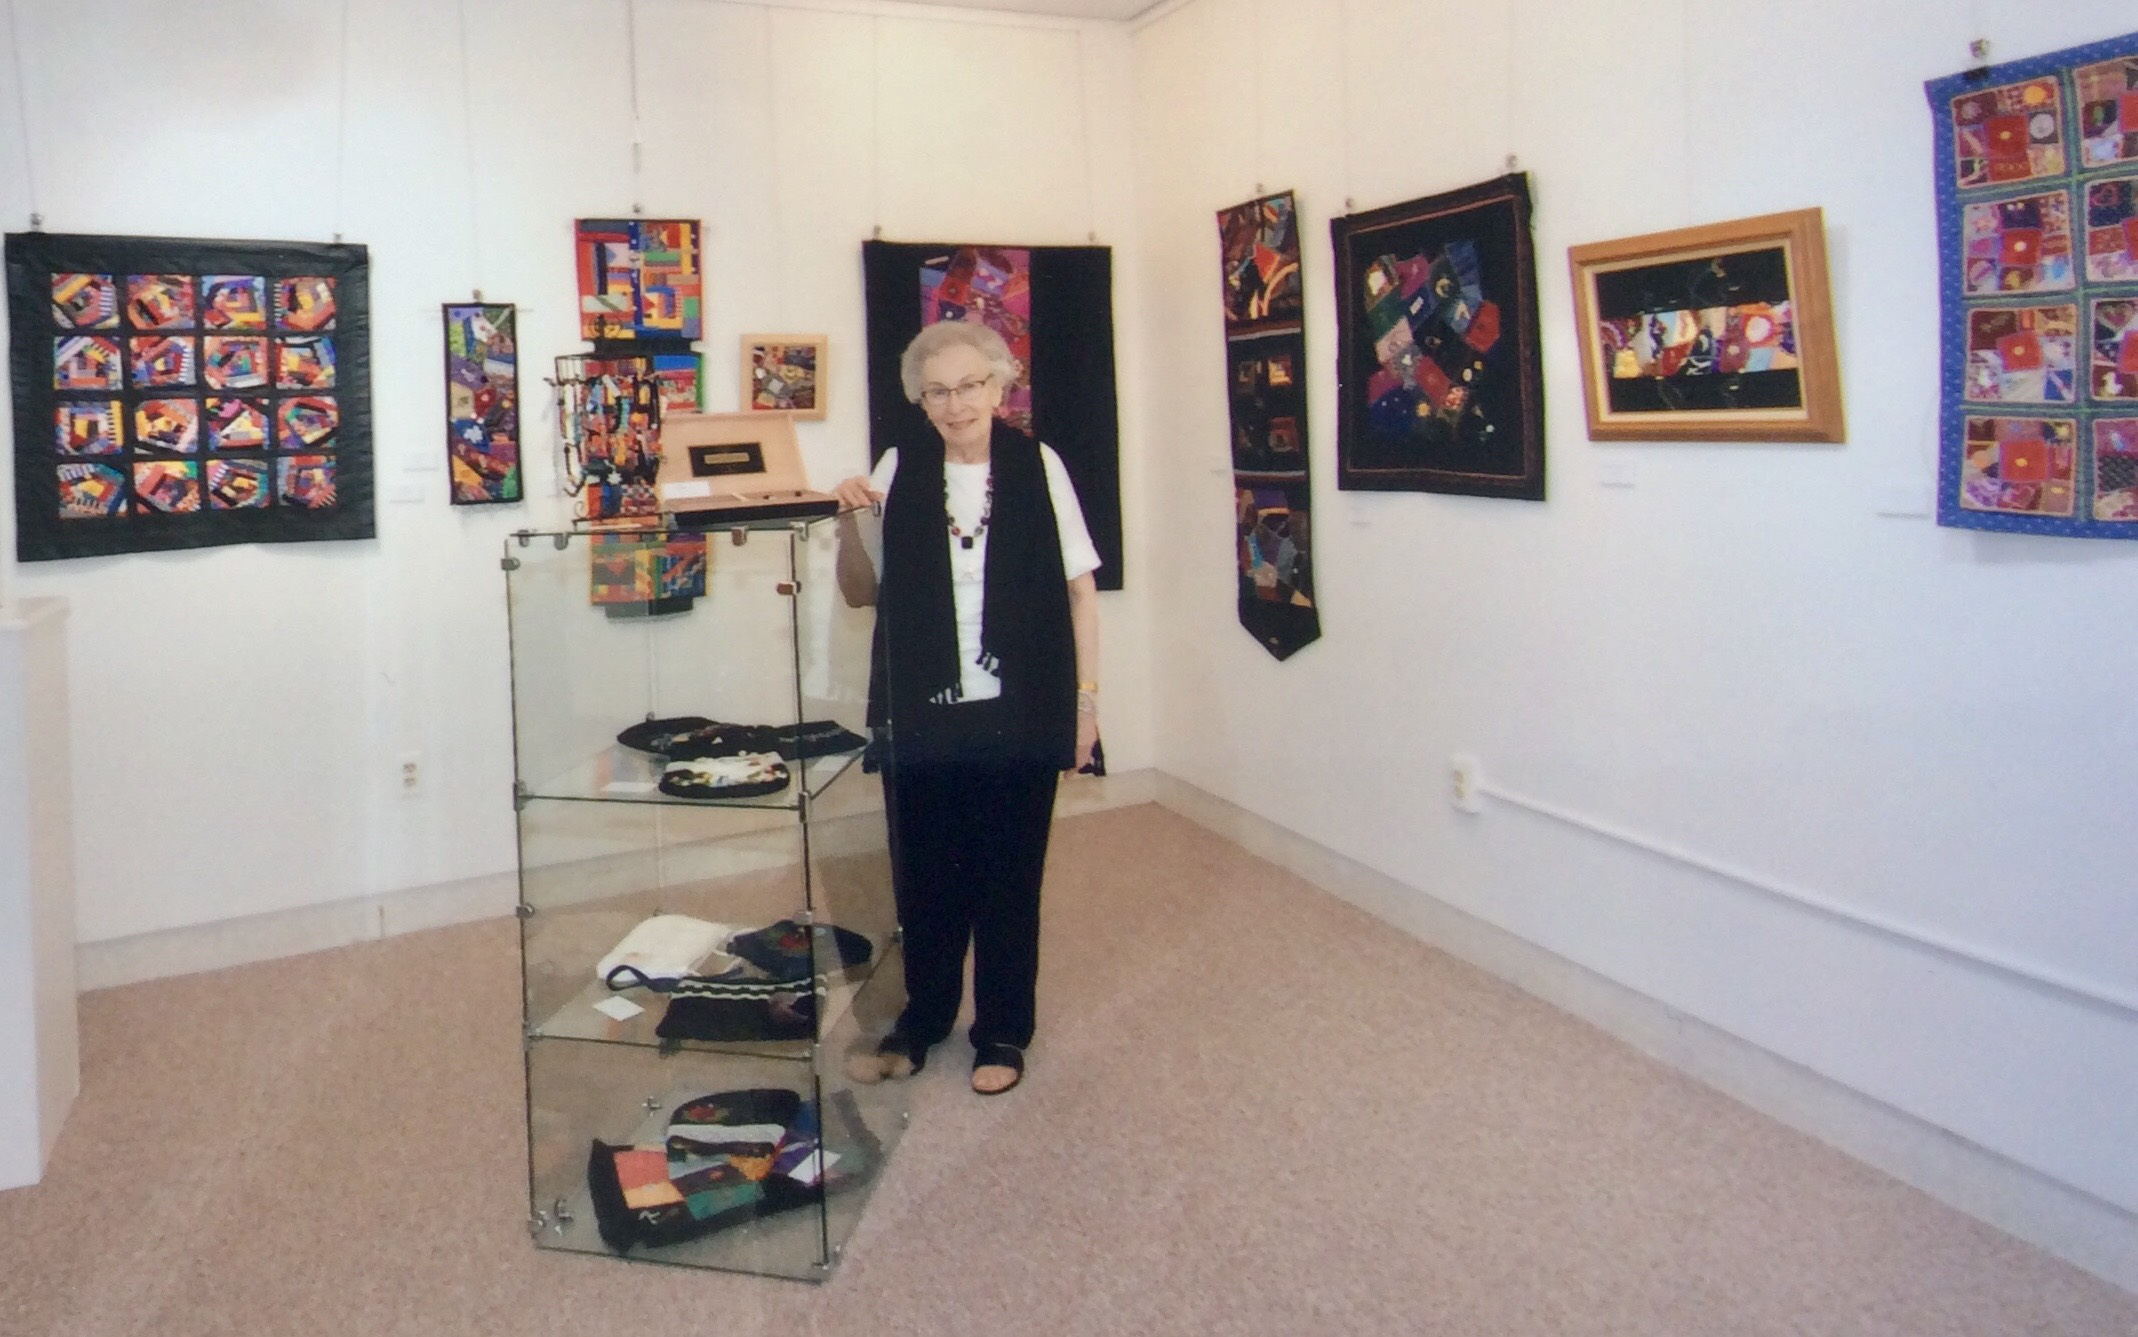 The Creative Life in Our Cities: A Conversation with Muriel Jacobs